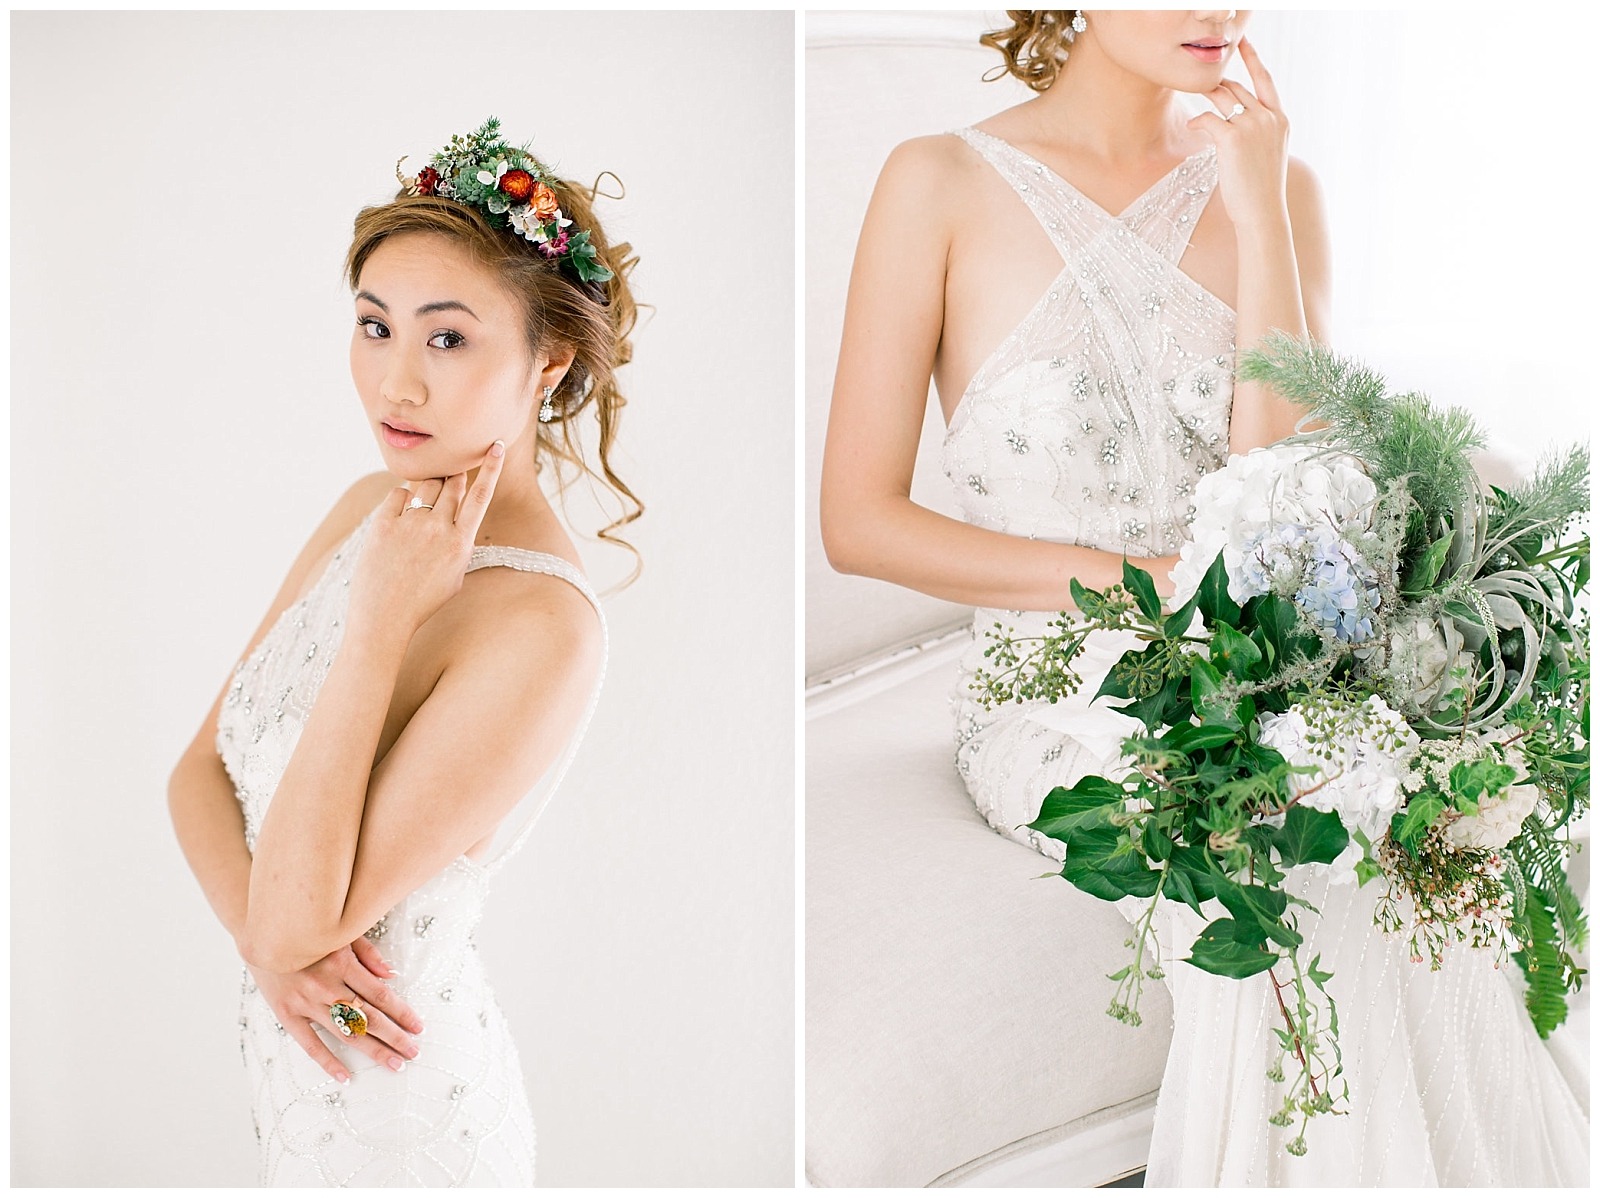 Living-Accessories-styled-shoot-de-joy-photography-epiphany-boutique-bridal-gown.jpg